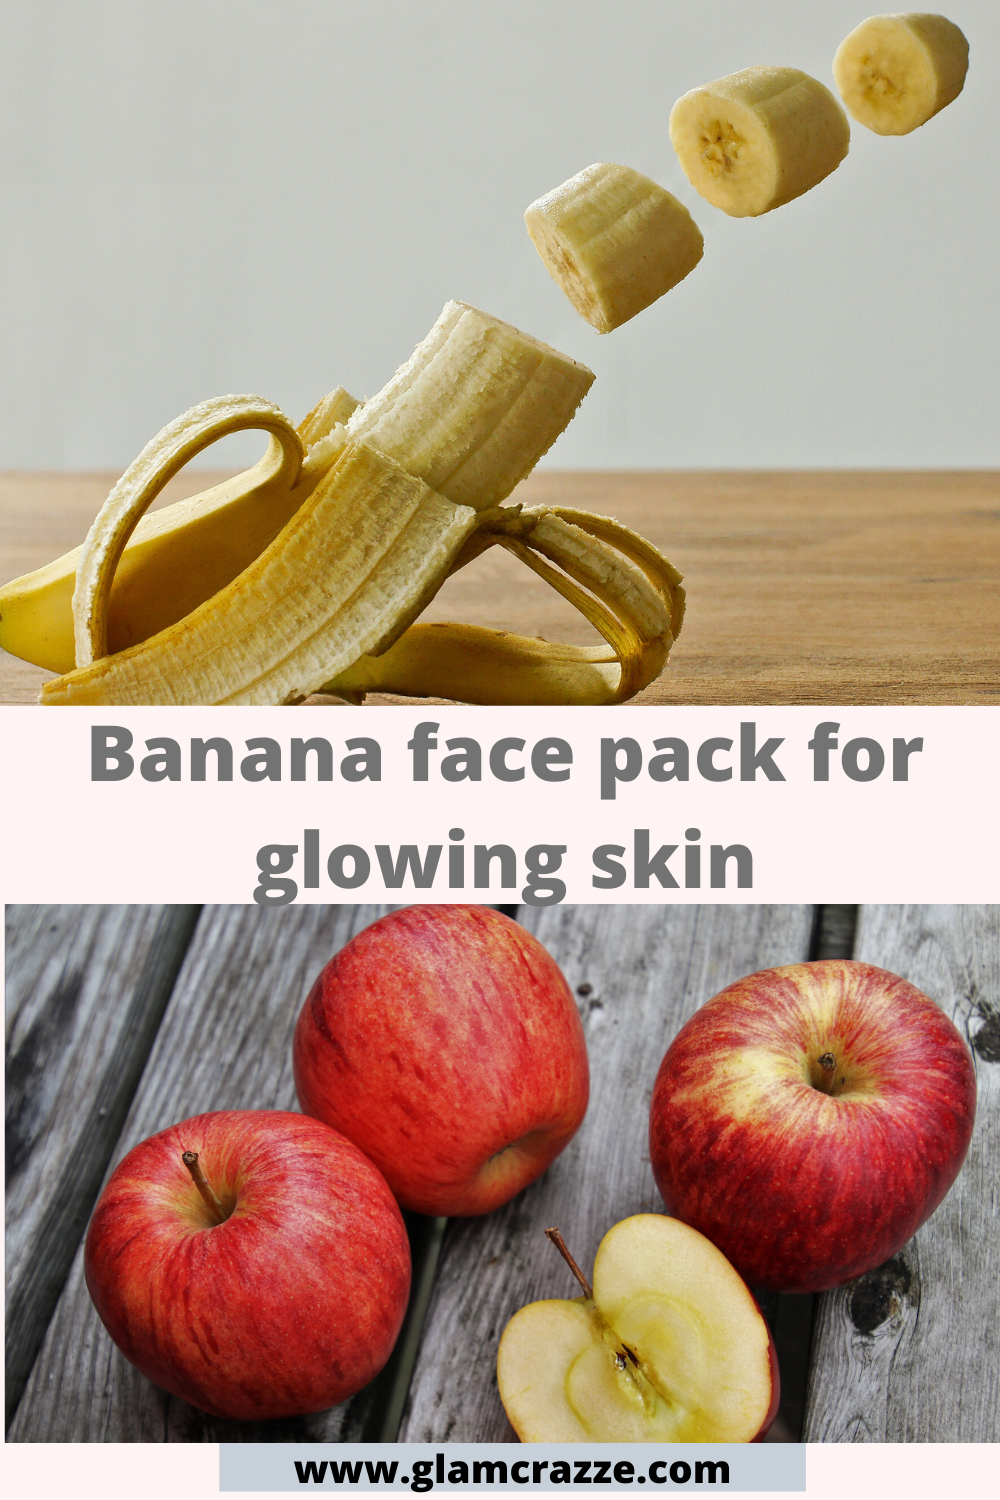 Banana and apple face pack for glowing skin